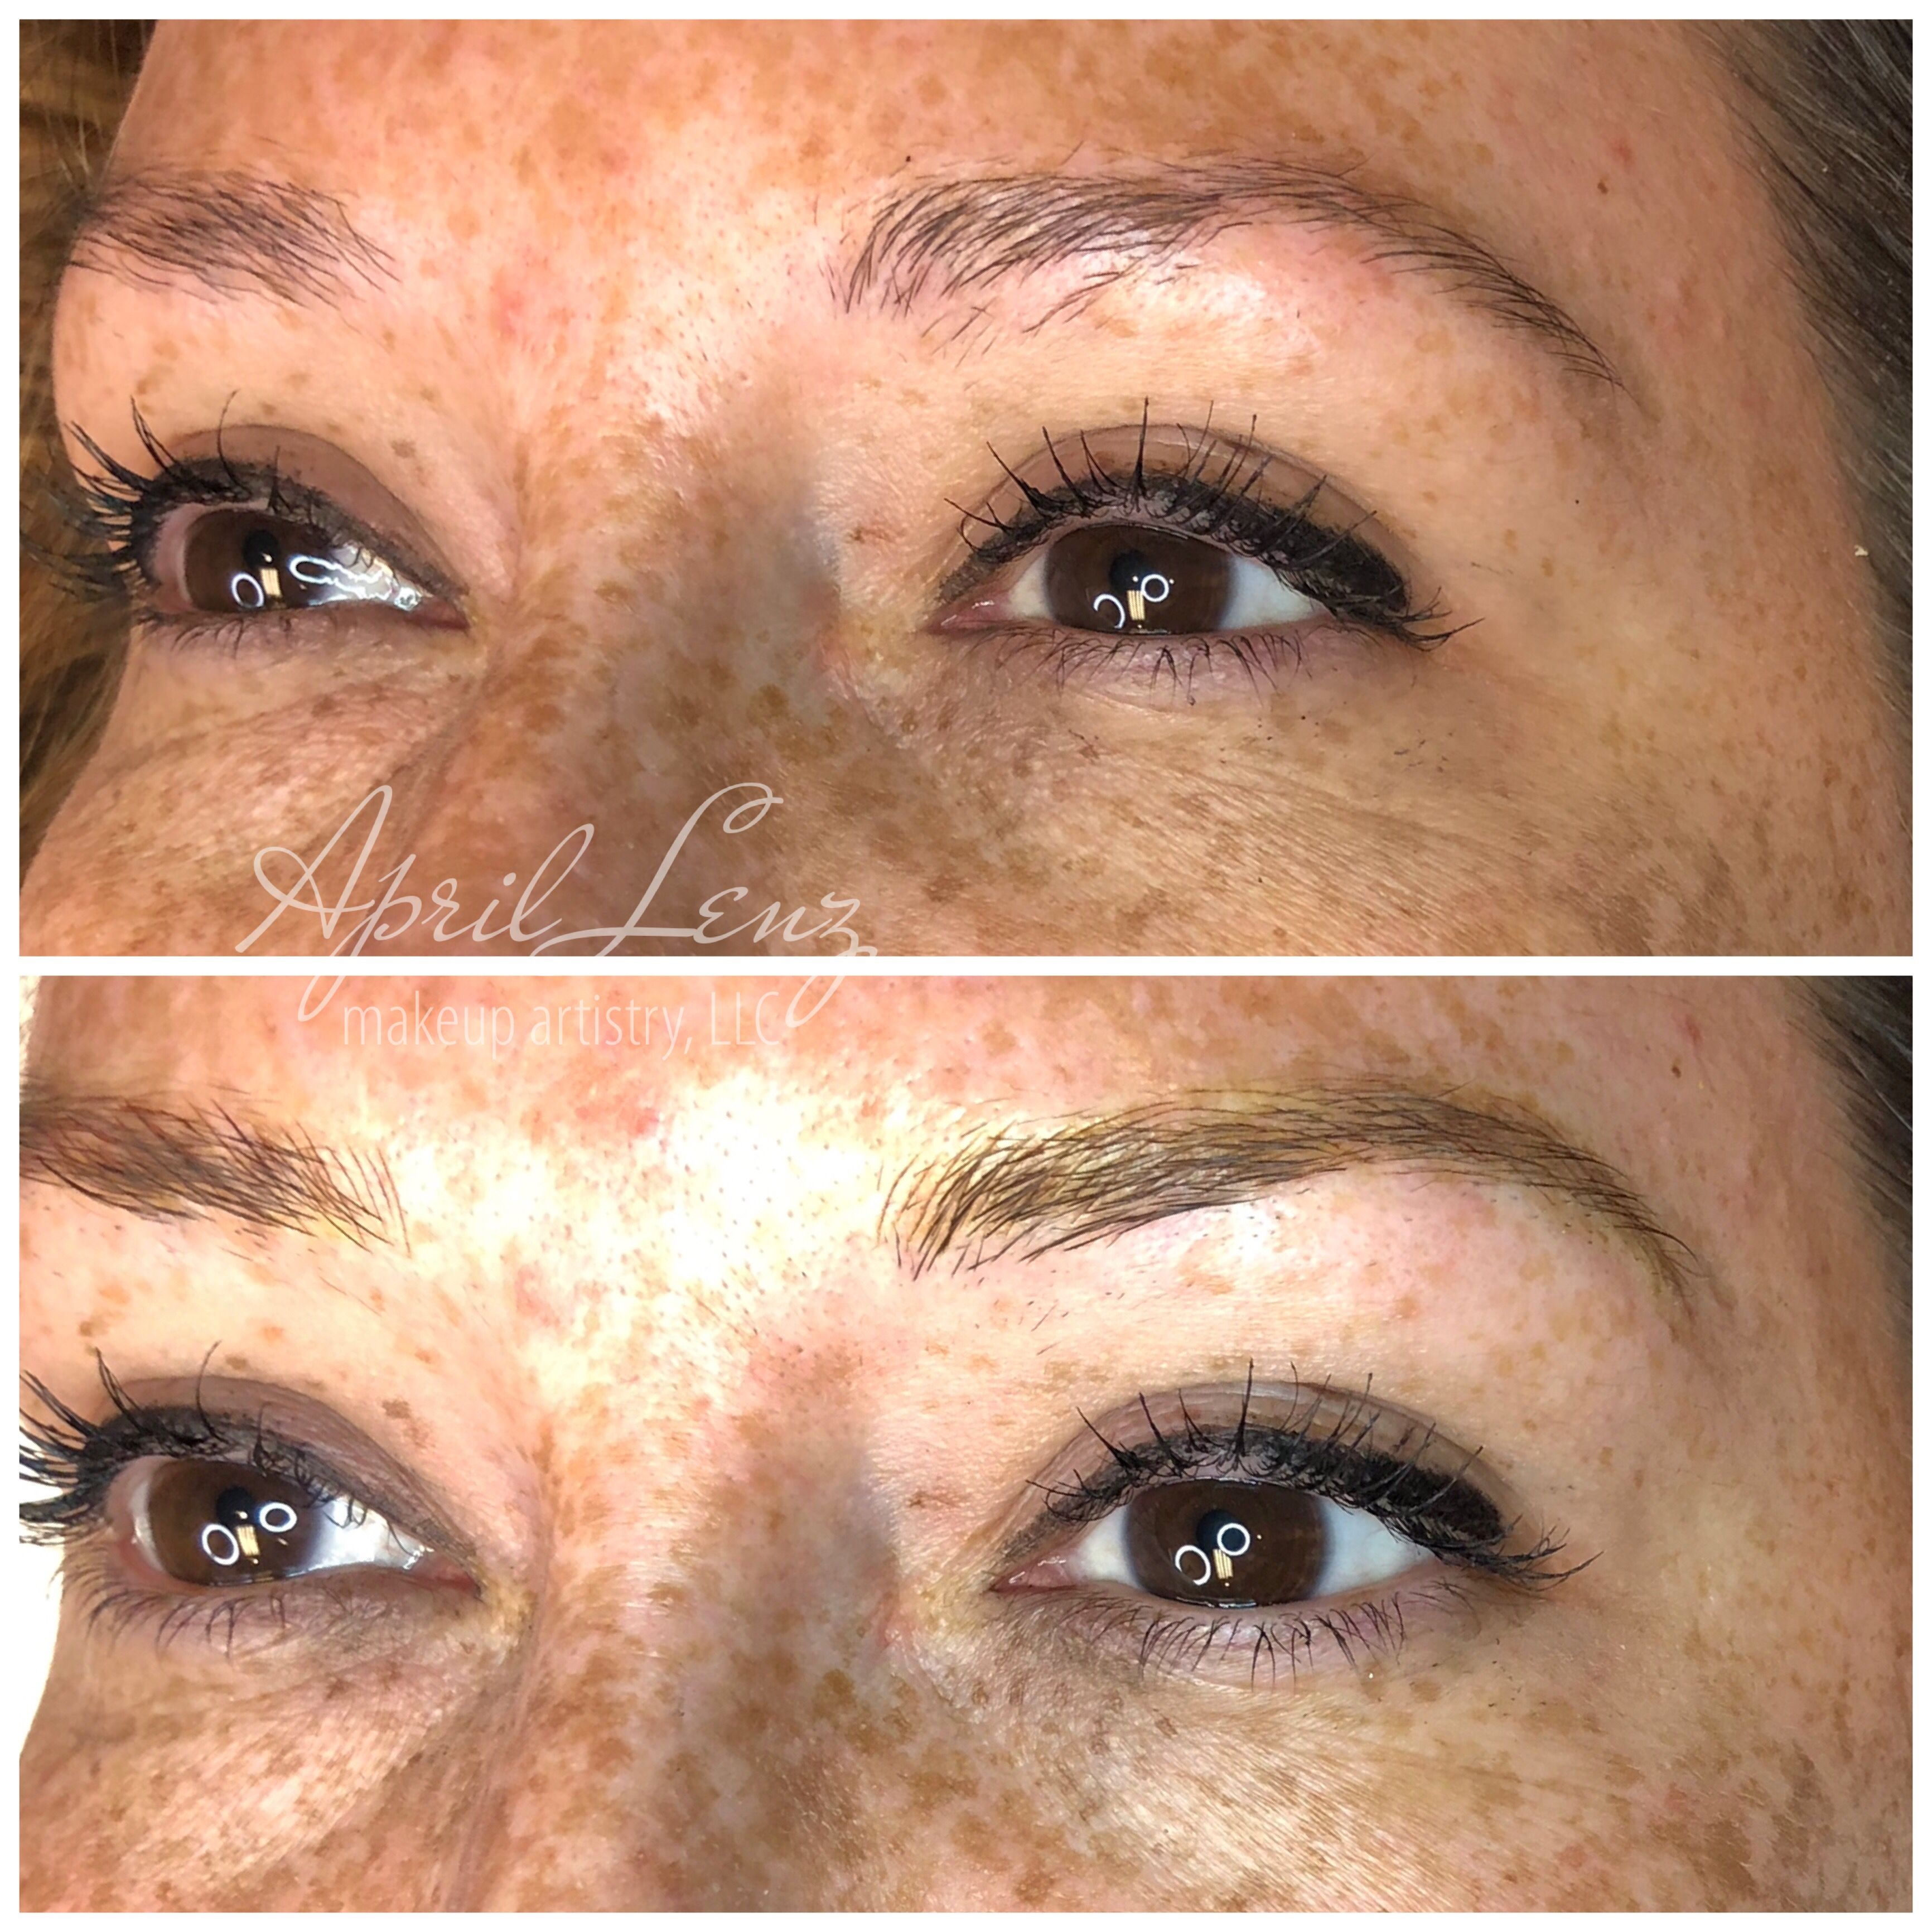 Pin by April Lenz on Ink Me Microblading, Brows